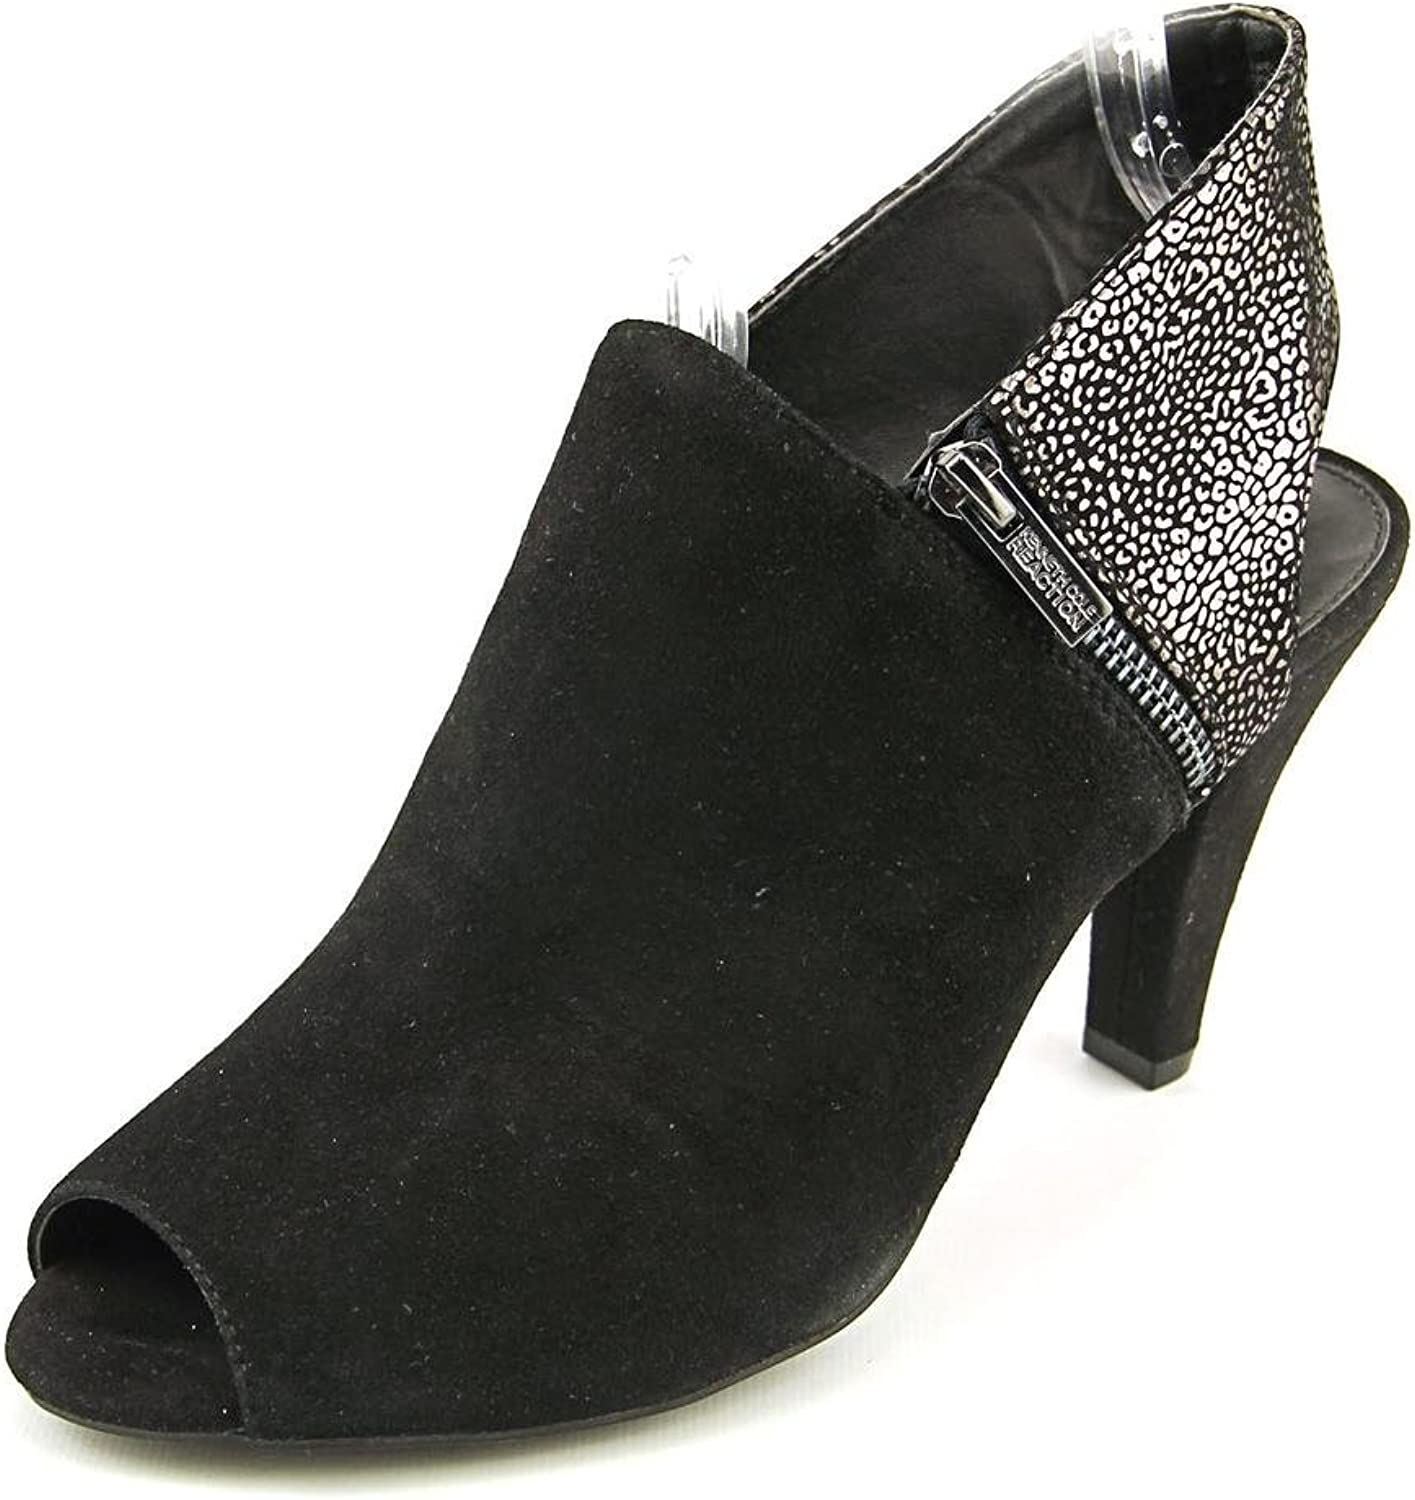 6074f969a1bc1 Kenneth Cole REACTION Women's Shock Peep Toe Shootie Shell ...